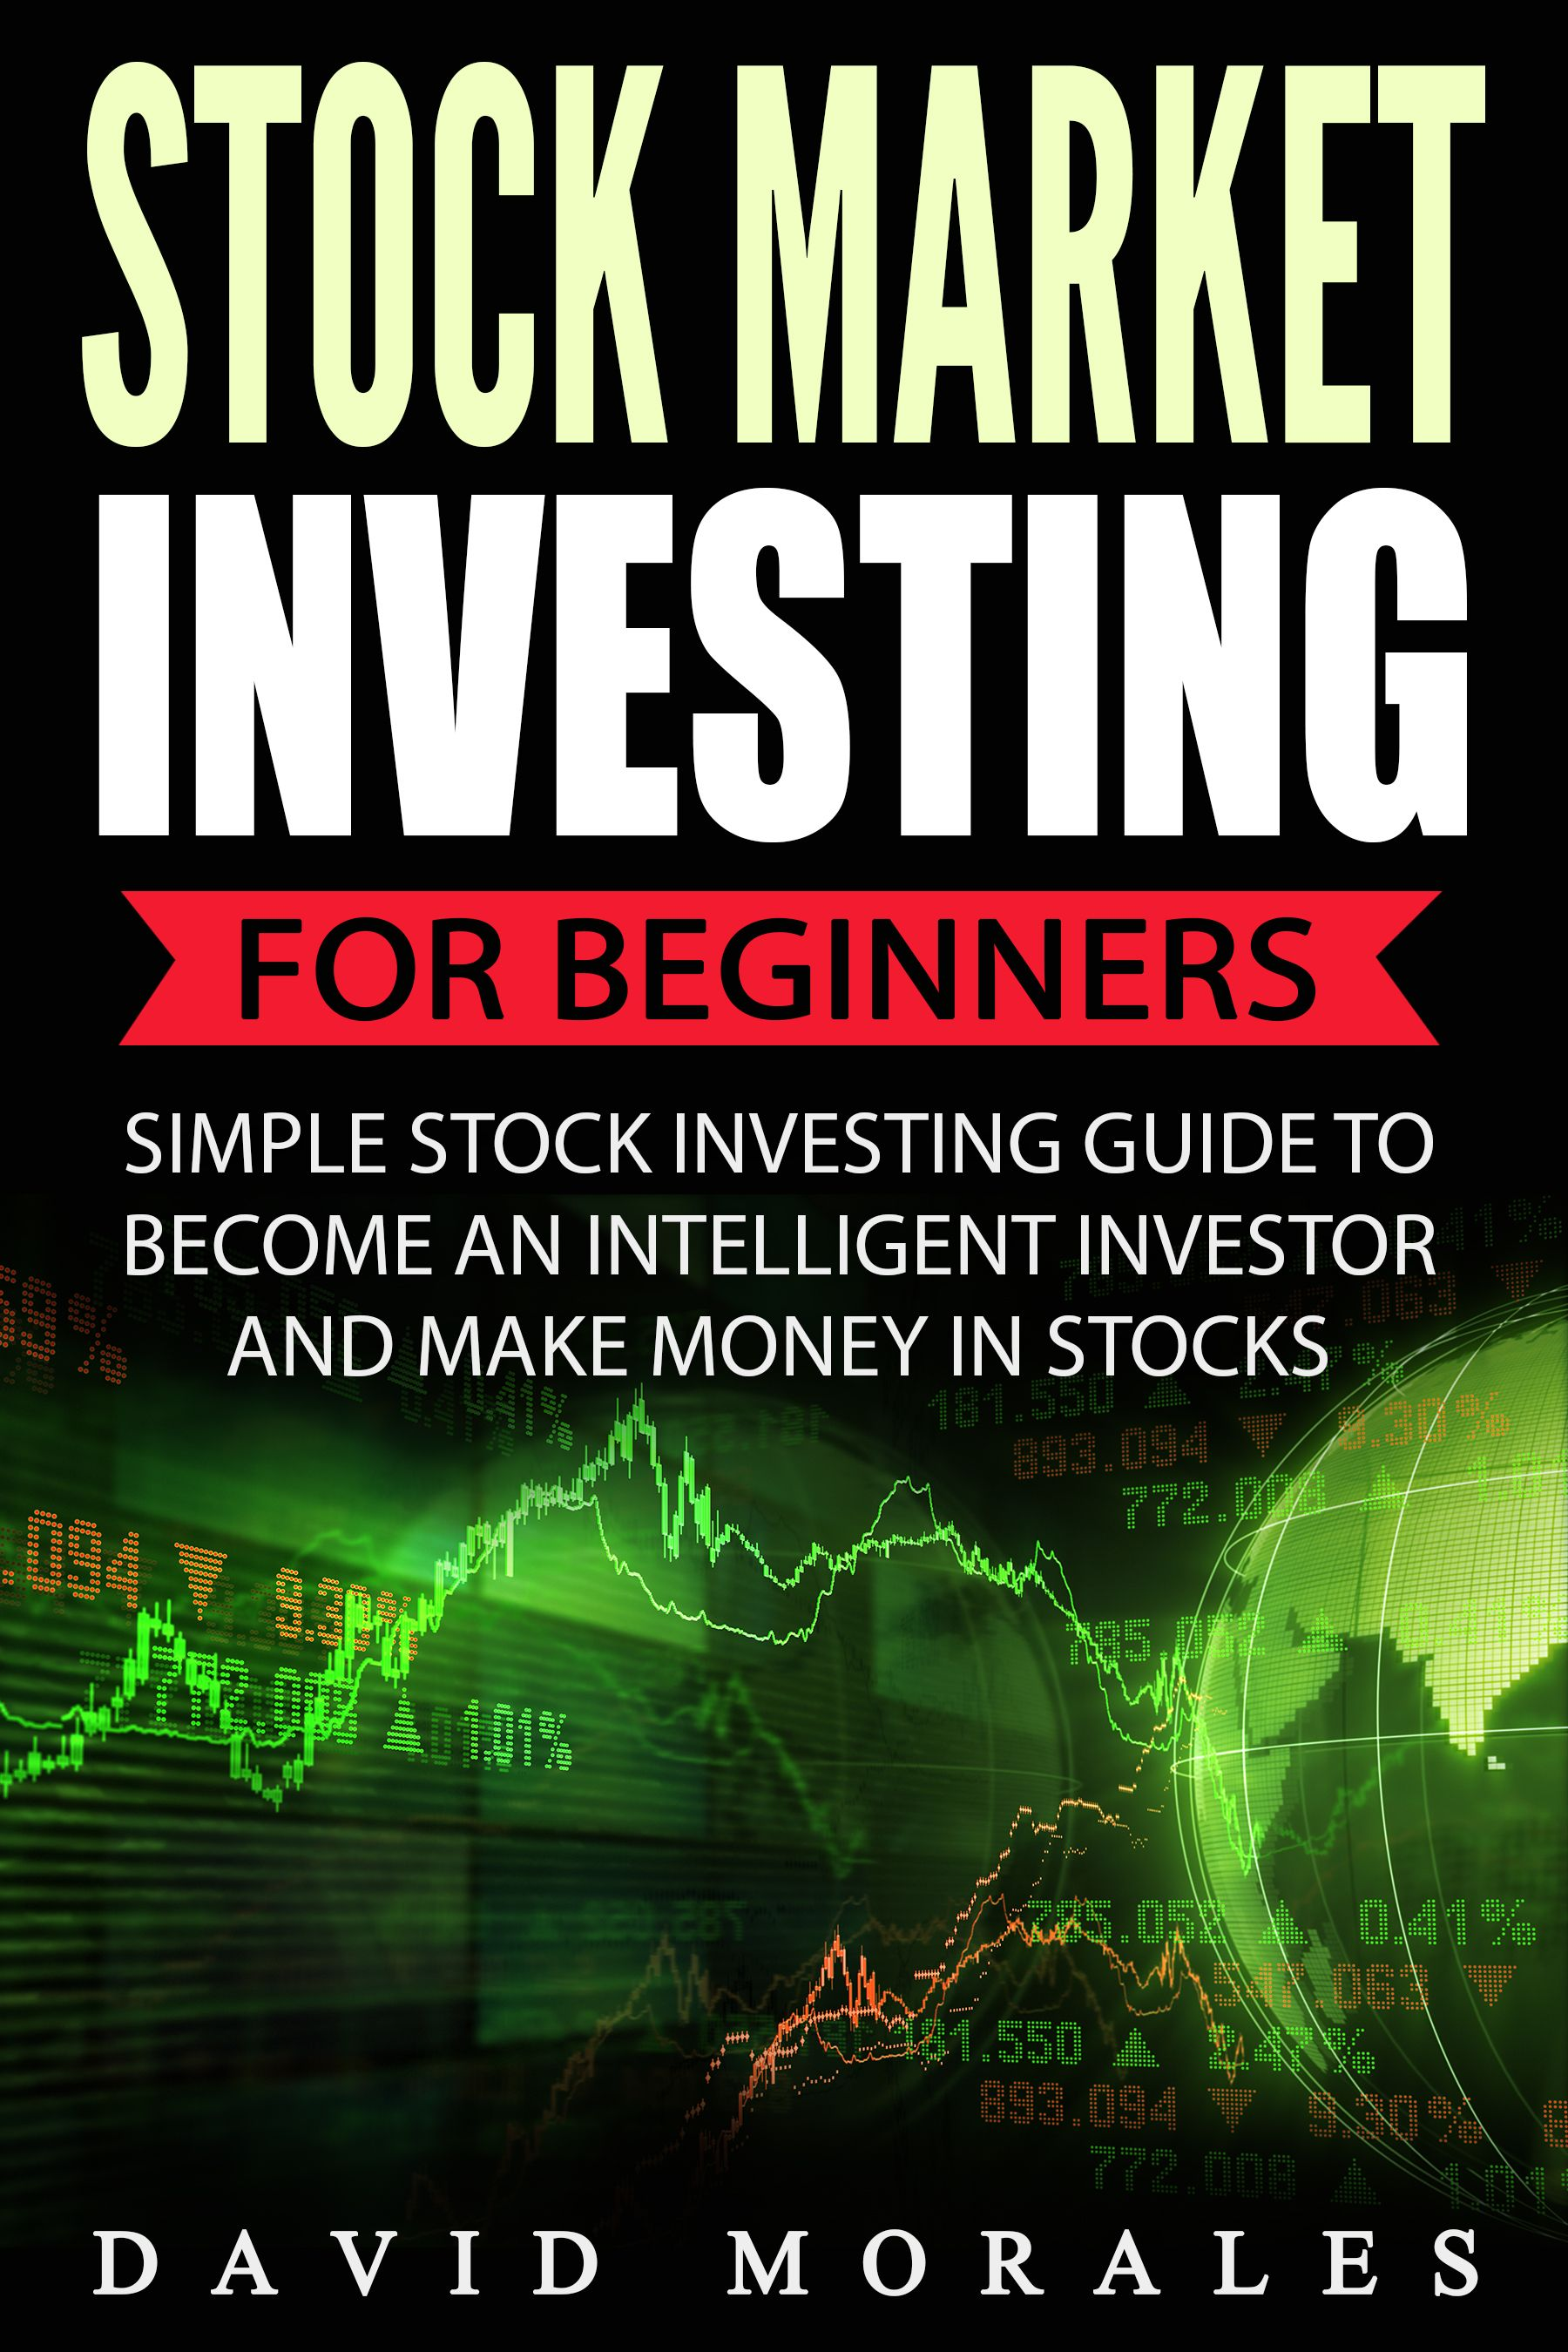 Stock market investing for beginners in 2020 investing